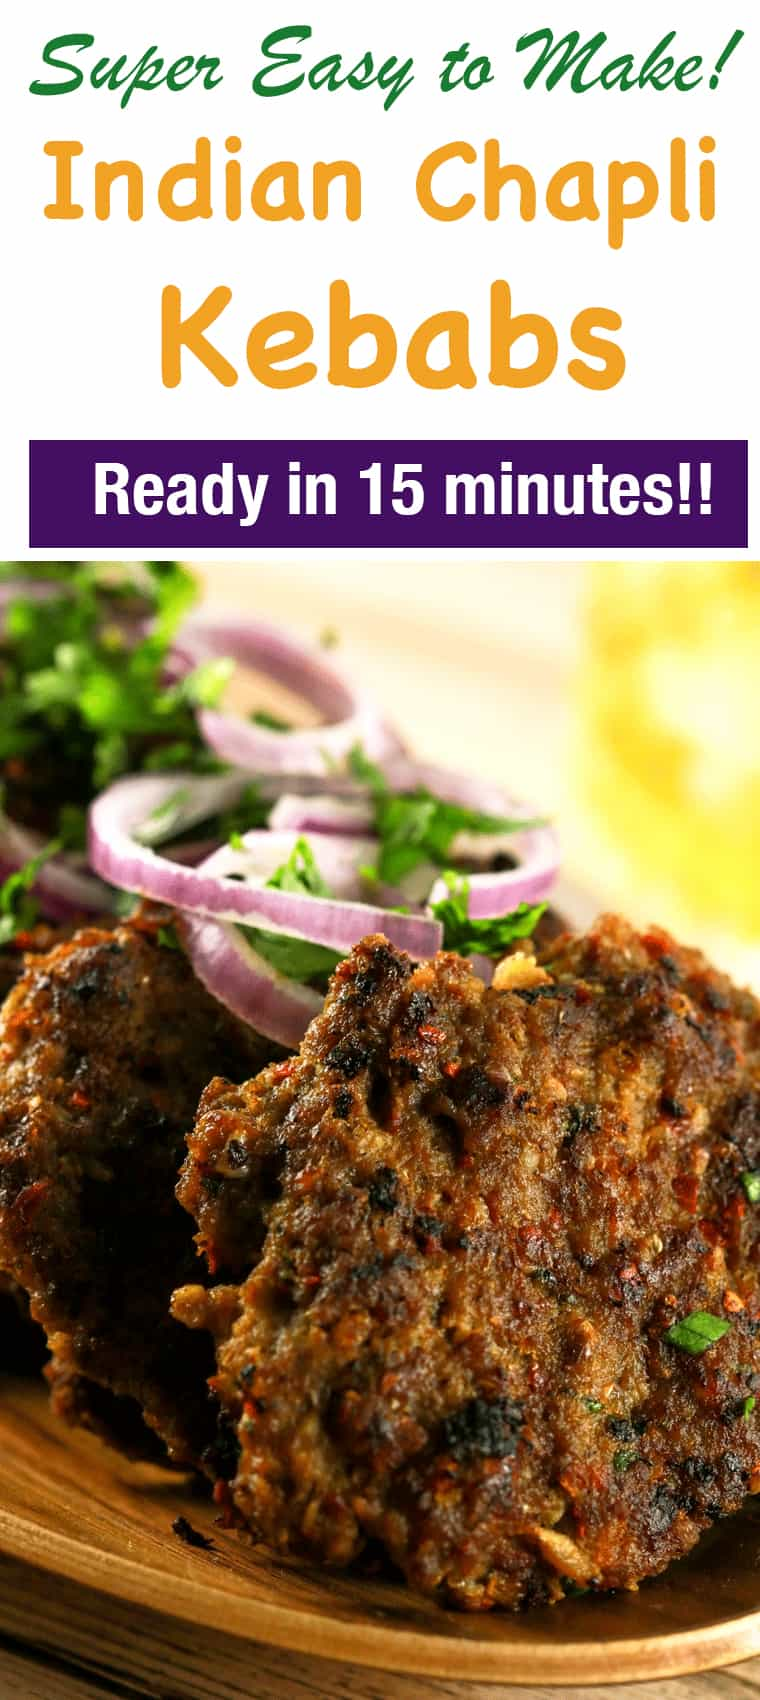 Spicy Indian Chapli Kebabs - These spicy Indian Chapli Kebabs will leave you wanting more! They're super delicious doesn't require any ingredients that are difficult to find! And what's even better is that you can make these in under 20 minutes!! | ScrambledChefs.com